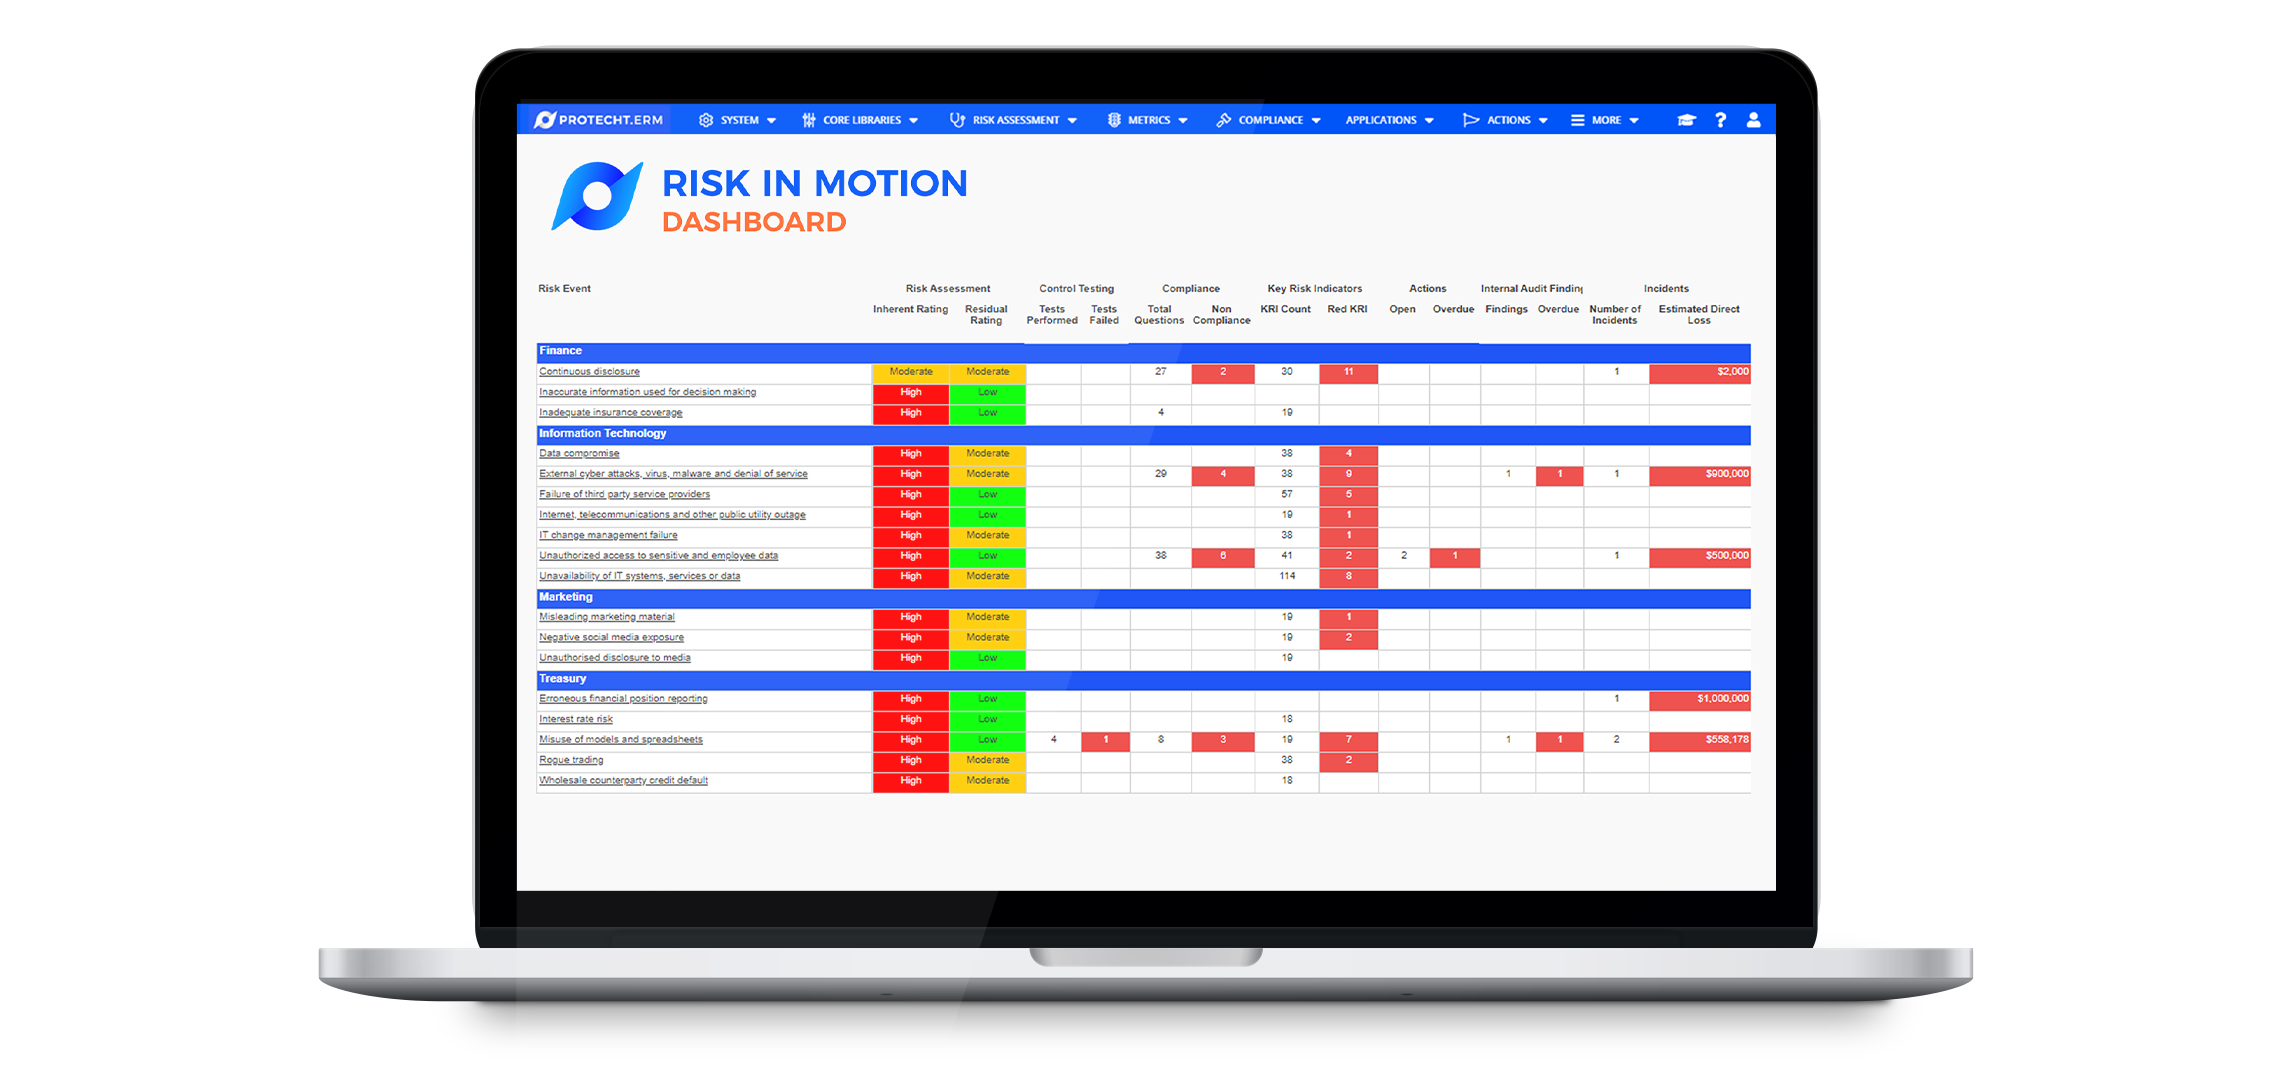 Understanding RiskInMotion: How to bring all your risk information into one dashboard